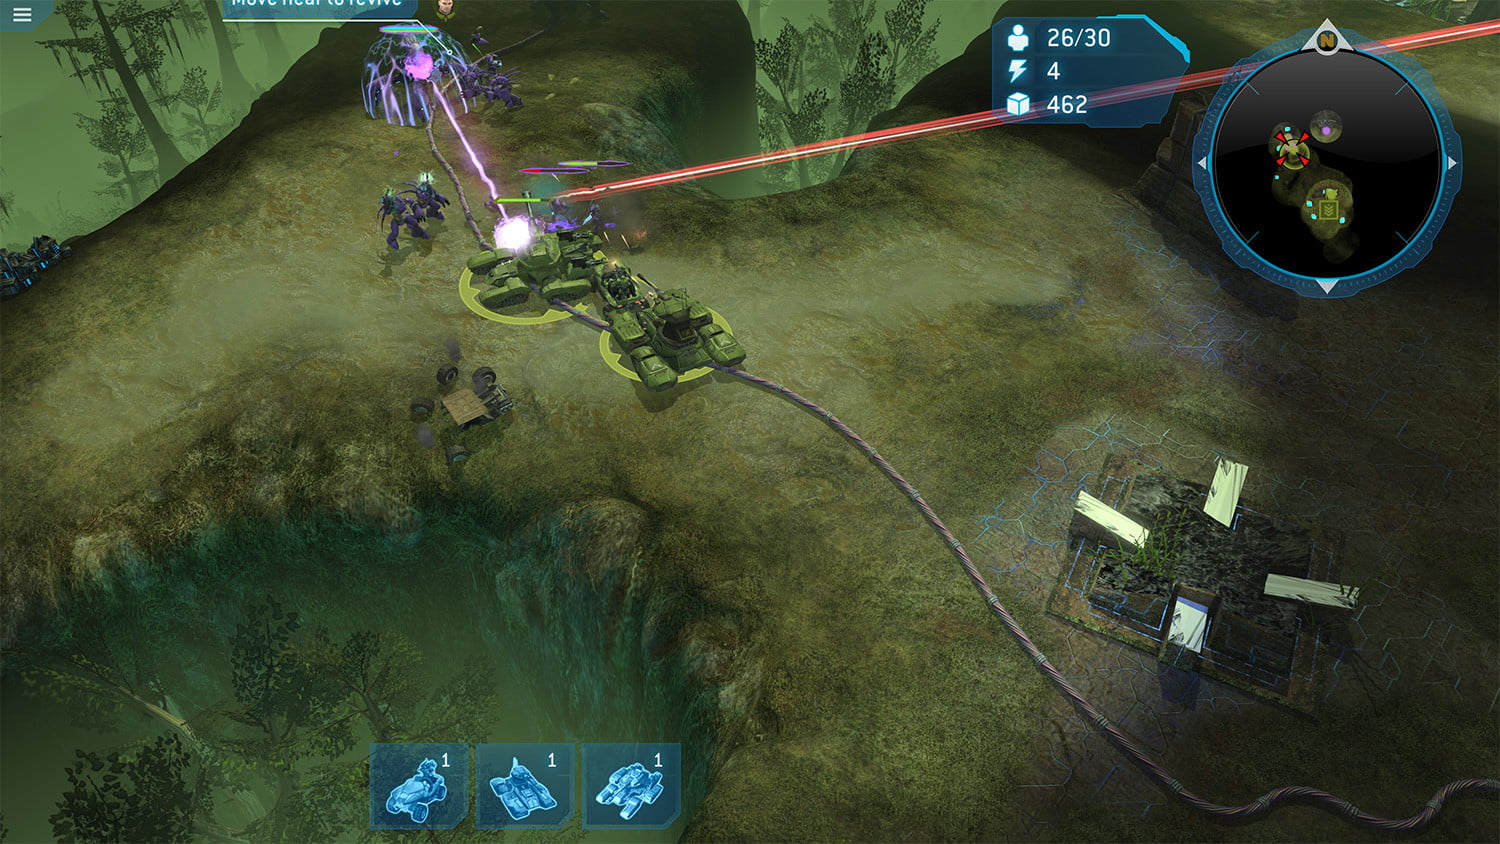 halo wars definitive edition first impressions halowars2 screen 08